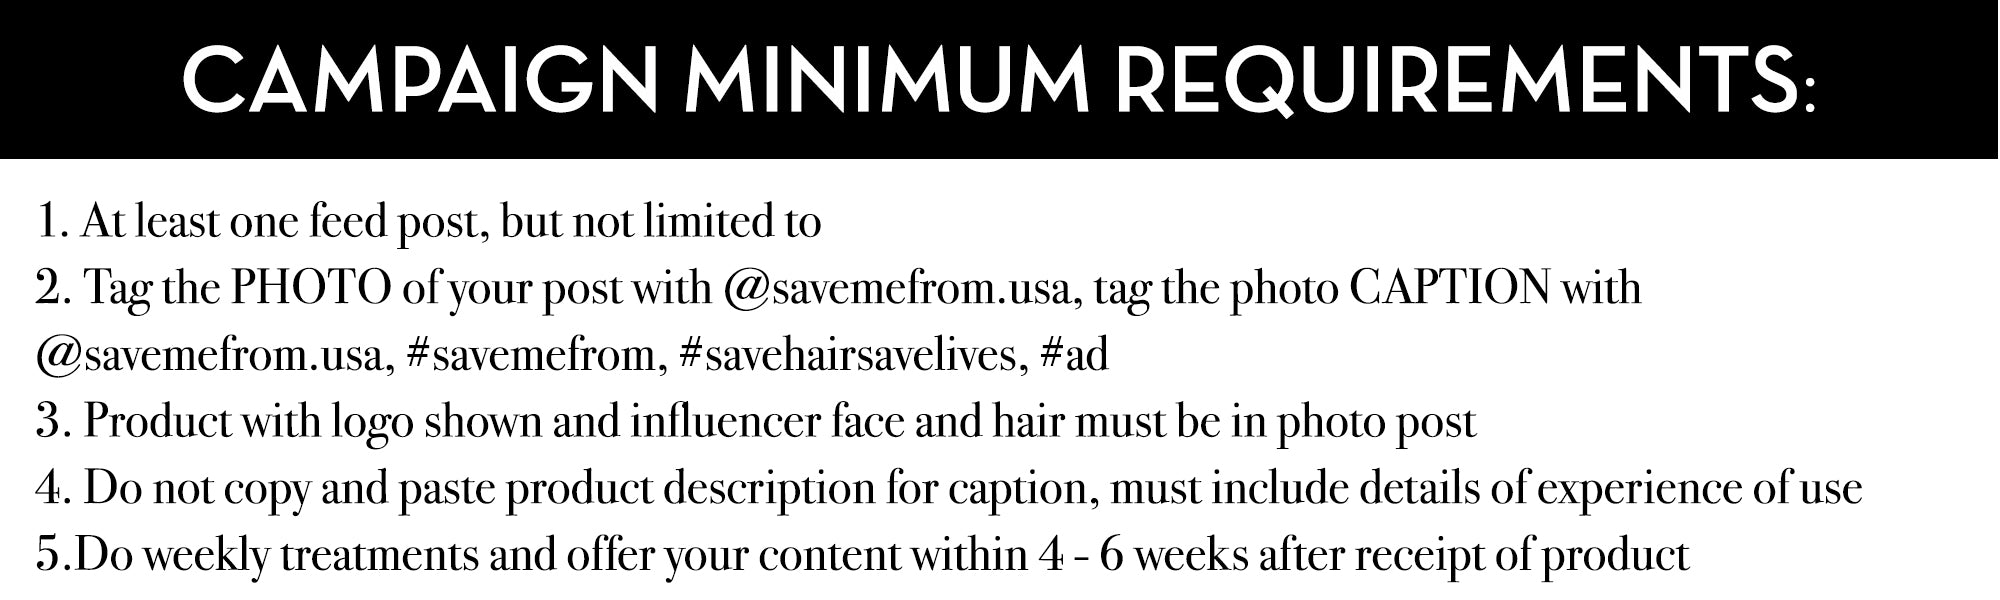 CAMPAIGN MINIMUM REQUIREMENTS: 1. At least one feed post, but not limited to 2. Tag the PHOTO of your post with @savemefrom.usa, tag the photo CAPTION with @savemefrom.usa, #savemefrom, #savehairsavelives, #ad 3. Product with logo shown and influencer face and hair must be in photo post 4. Do not copy and paste product description for caption, must include details of experience of use 5.Do weekly treatments and offer your content within 4 - 6 weeks after receipt of product